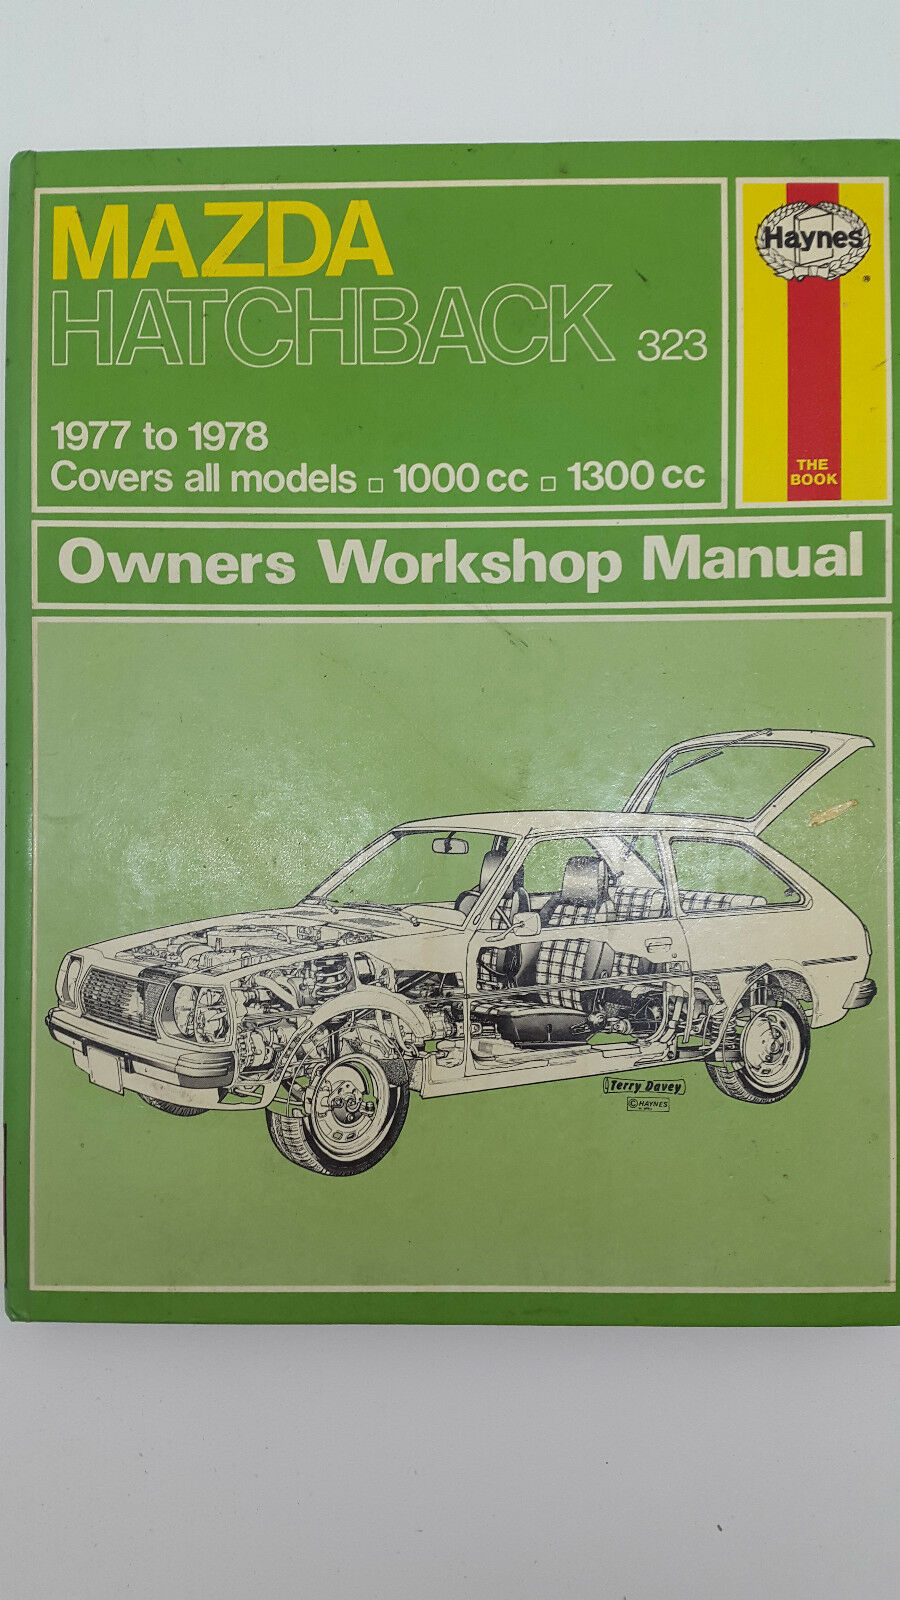 Haynes No 370 Mazda Hatchback 323 1977 – 1978 Workshop Manual